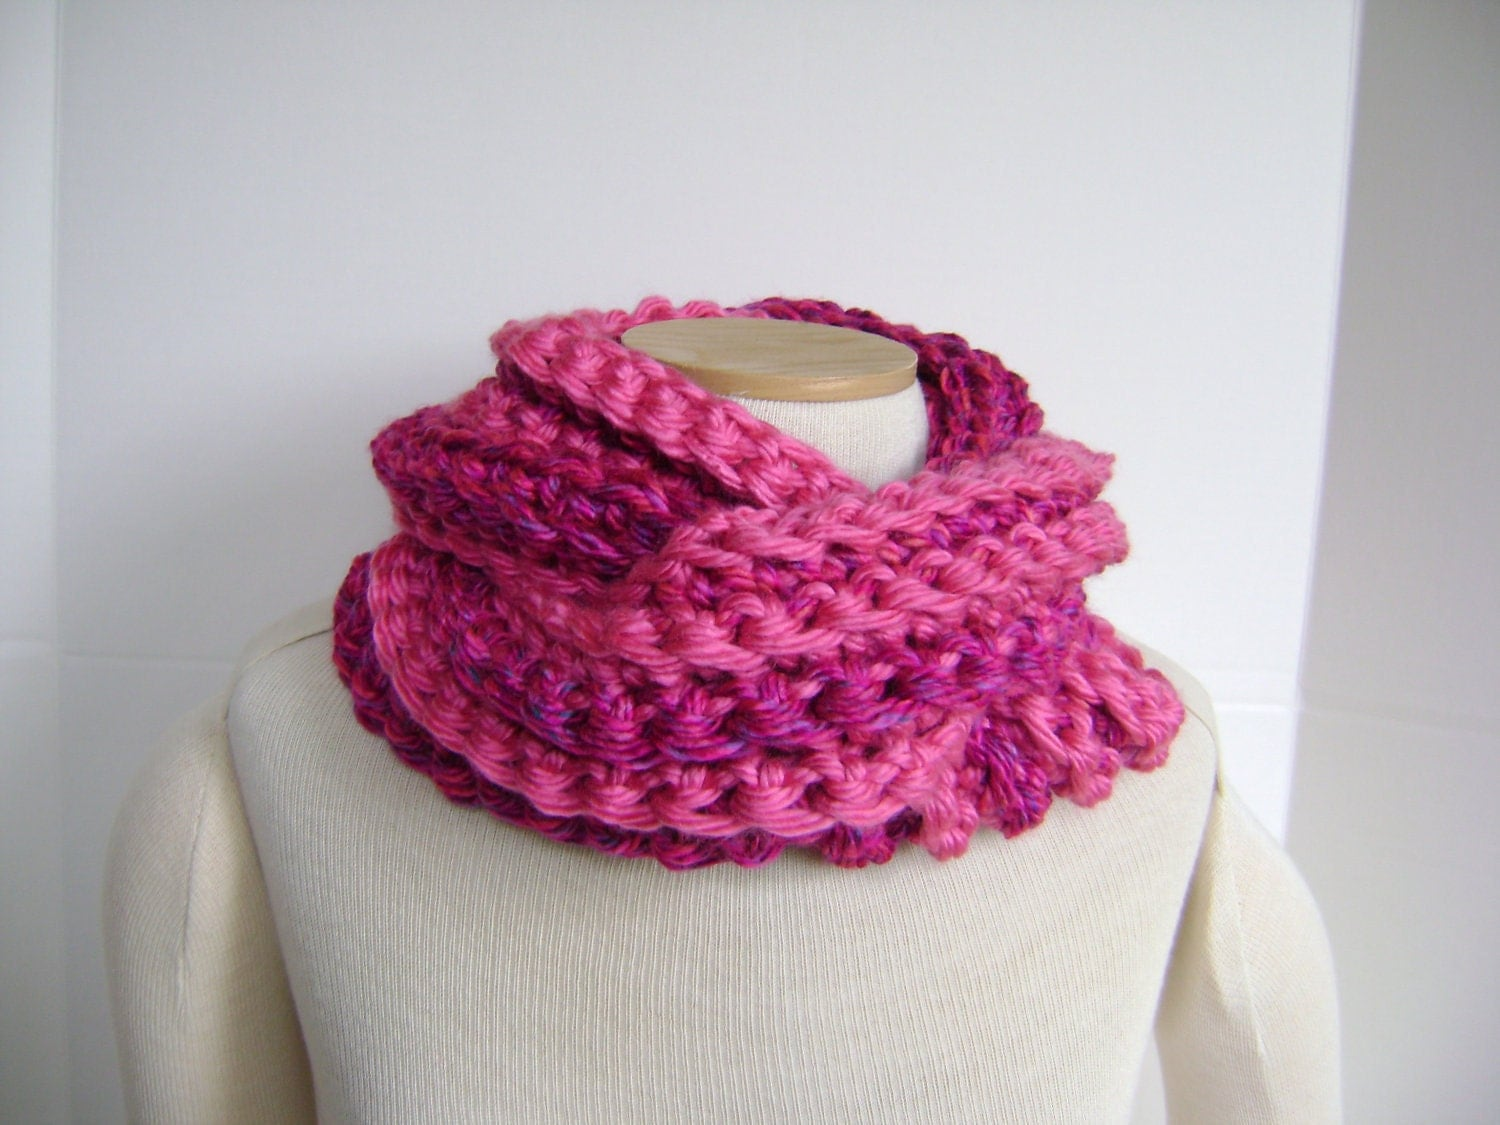 Crochet Cowl Scarf  ON SALE 28 reg 41 Mobius Style  For Woman or  Crochet Scarf For Sale